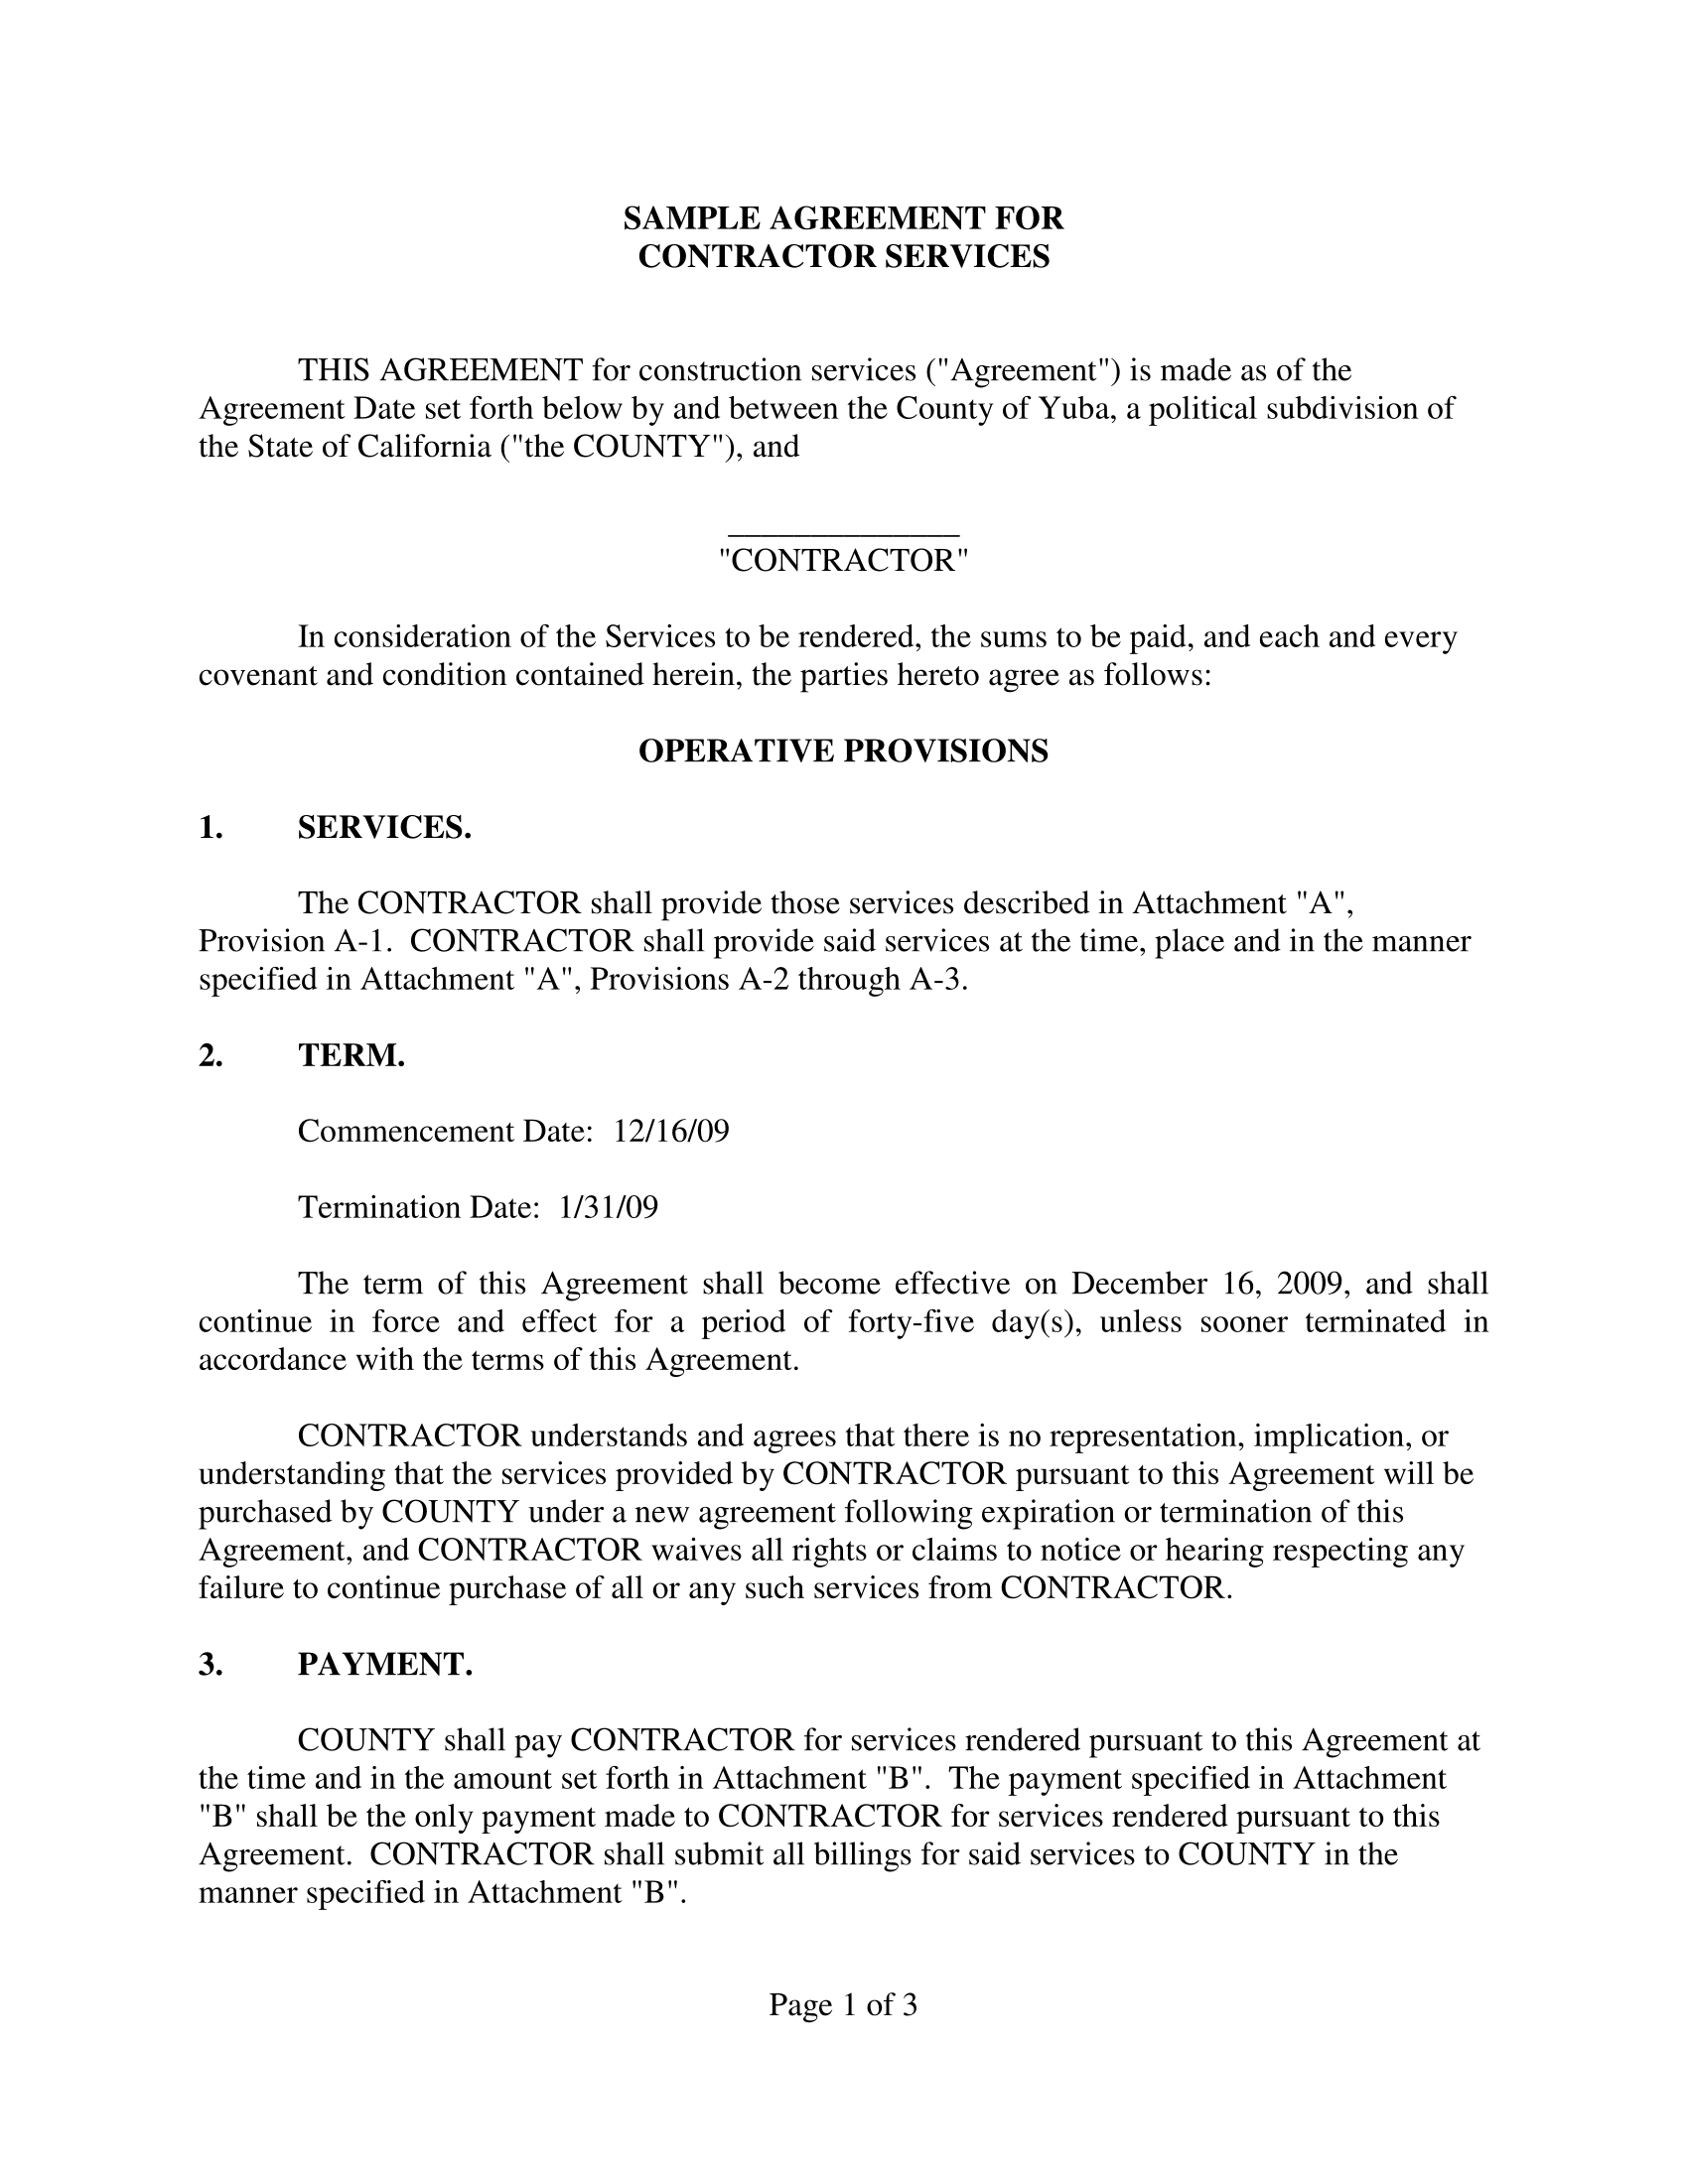 sample agreement for contractor services 01